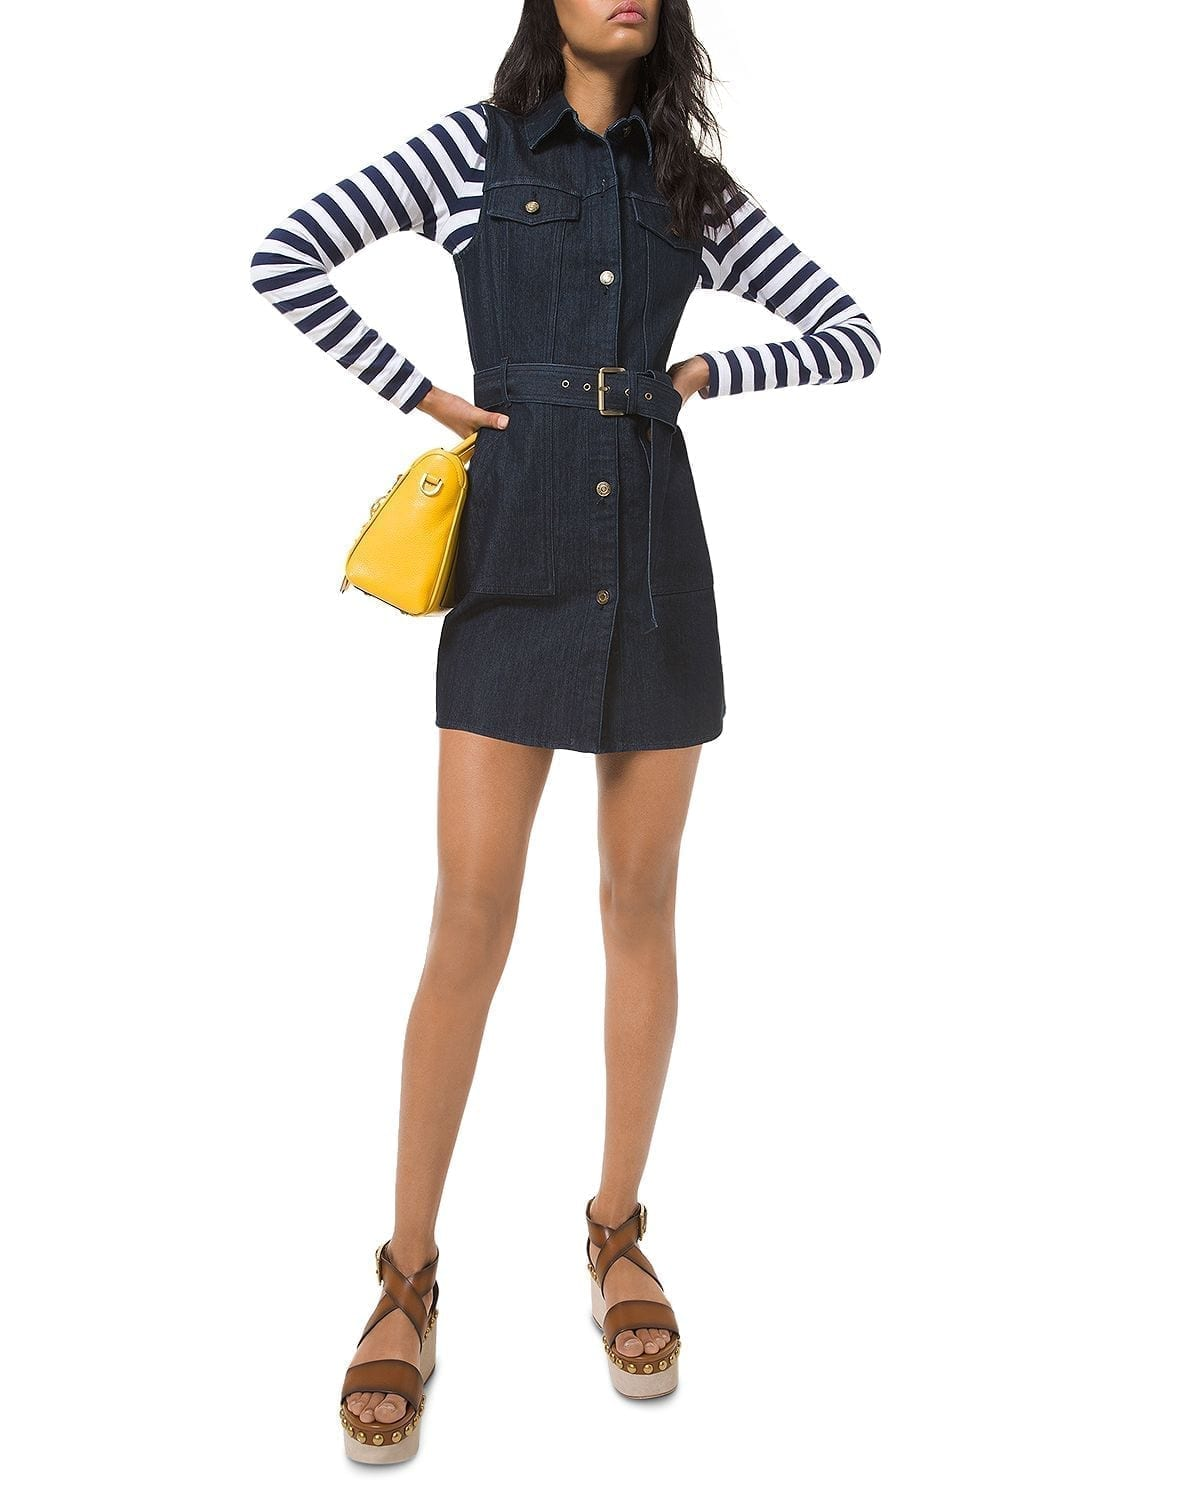 MICHAEL KORS Denim Belted Mini Dress